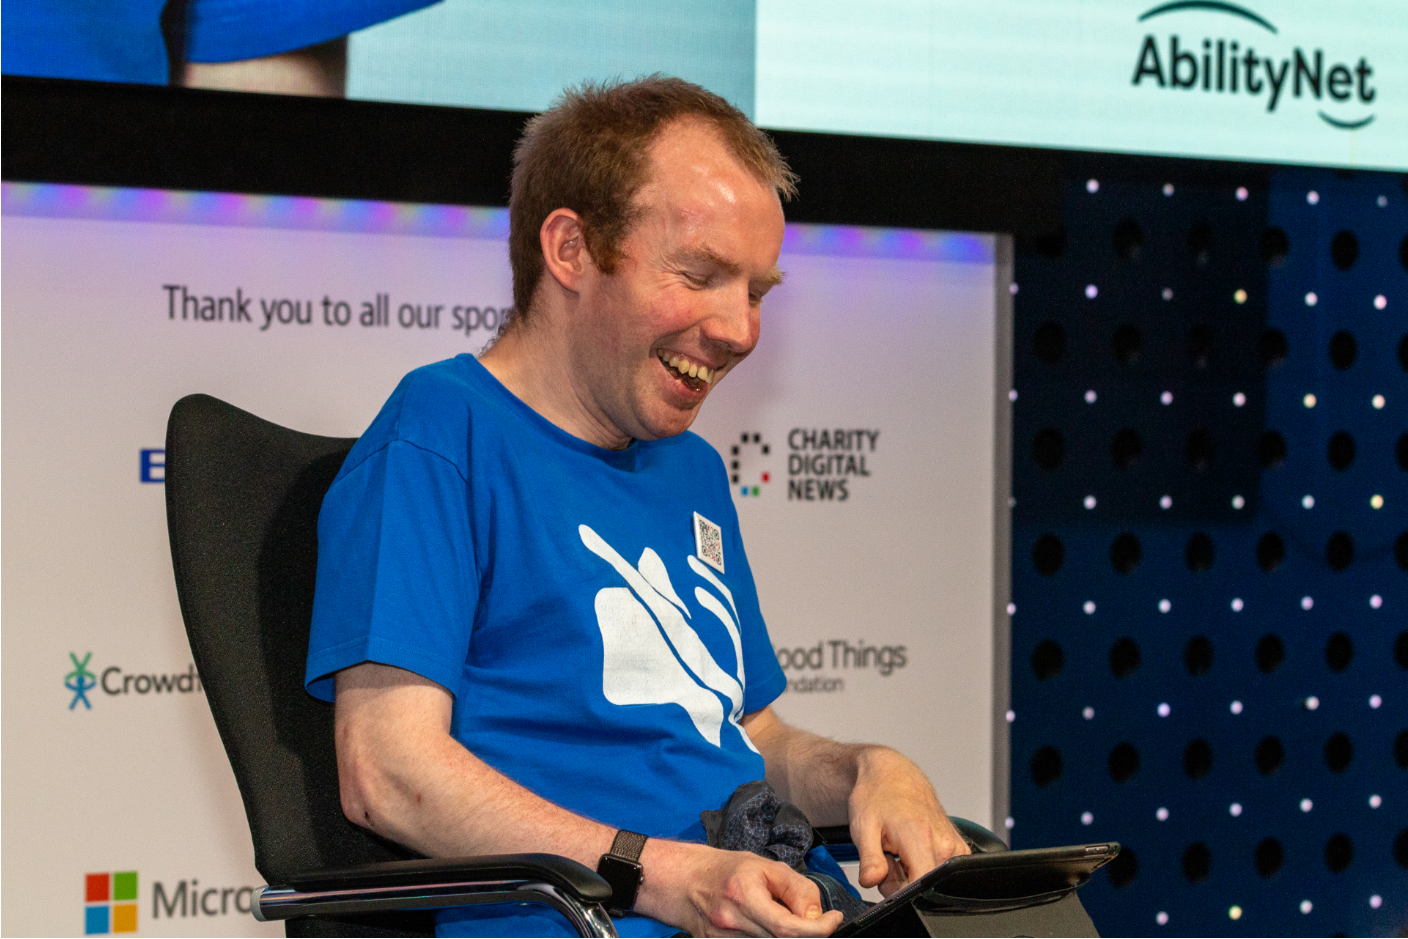 Colour photo of Lost Voice Guy at Tech4Good Awards 2019